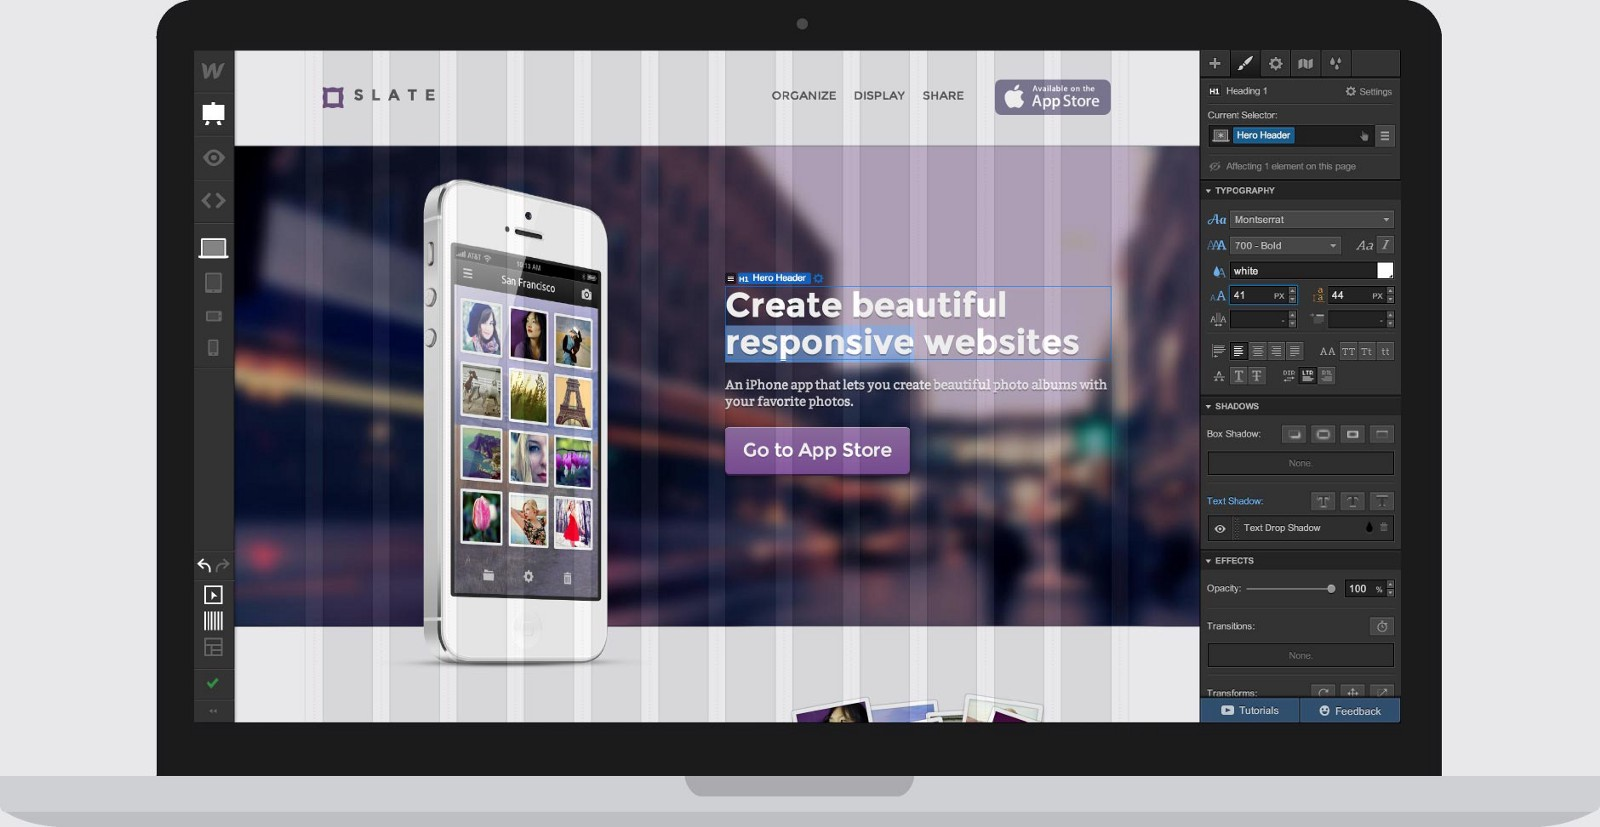 Webflow web design platform